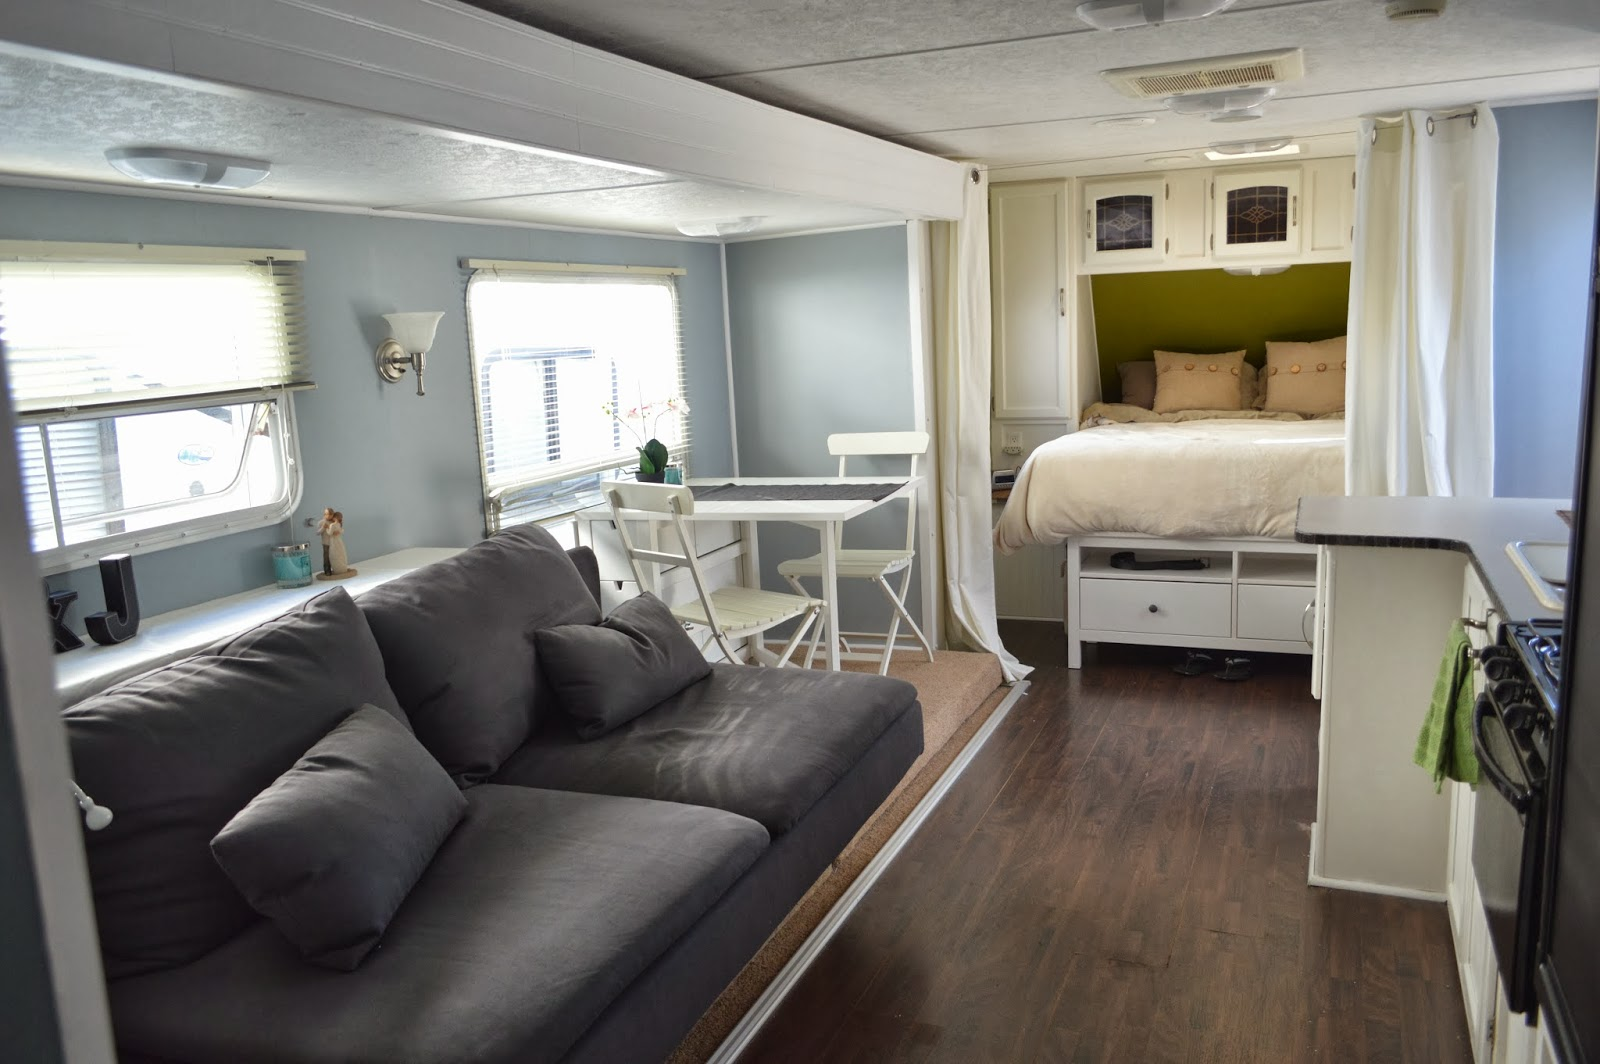 Traveling triads travel trailer remodel reveal for Design caravan renovation ideas home